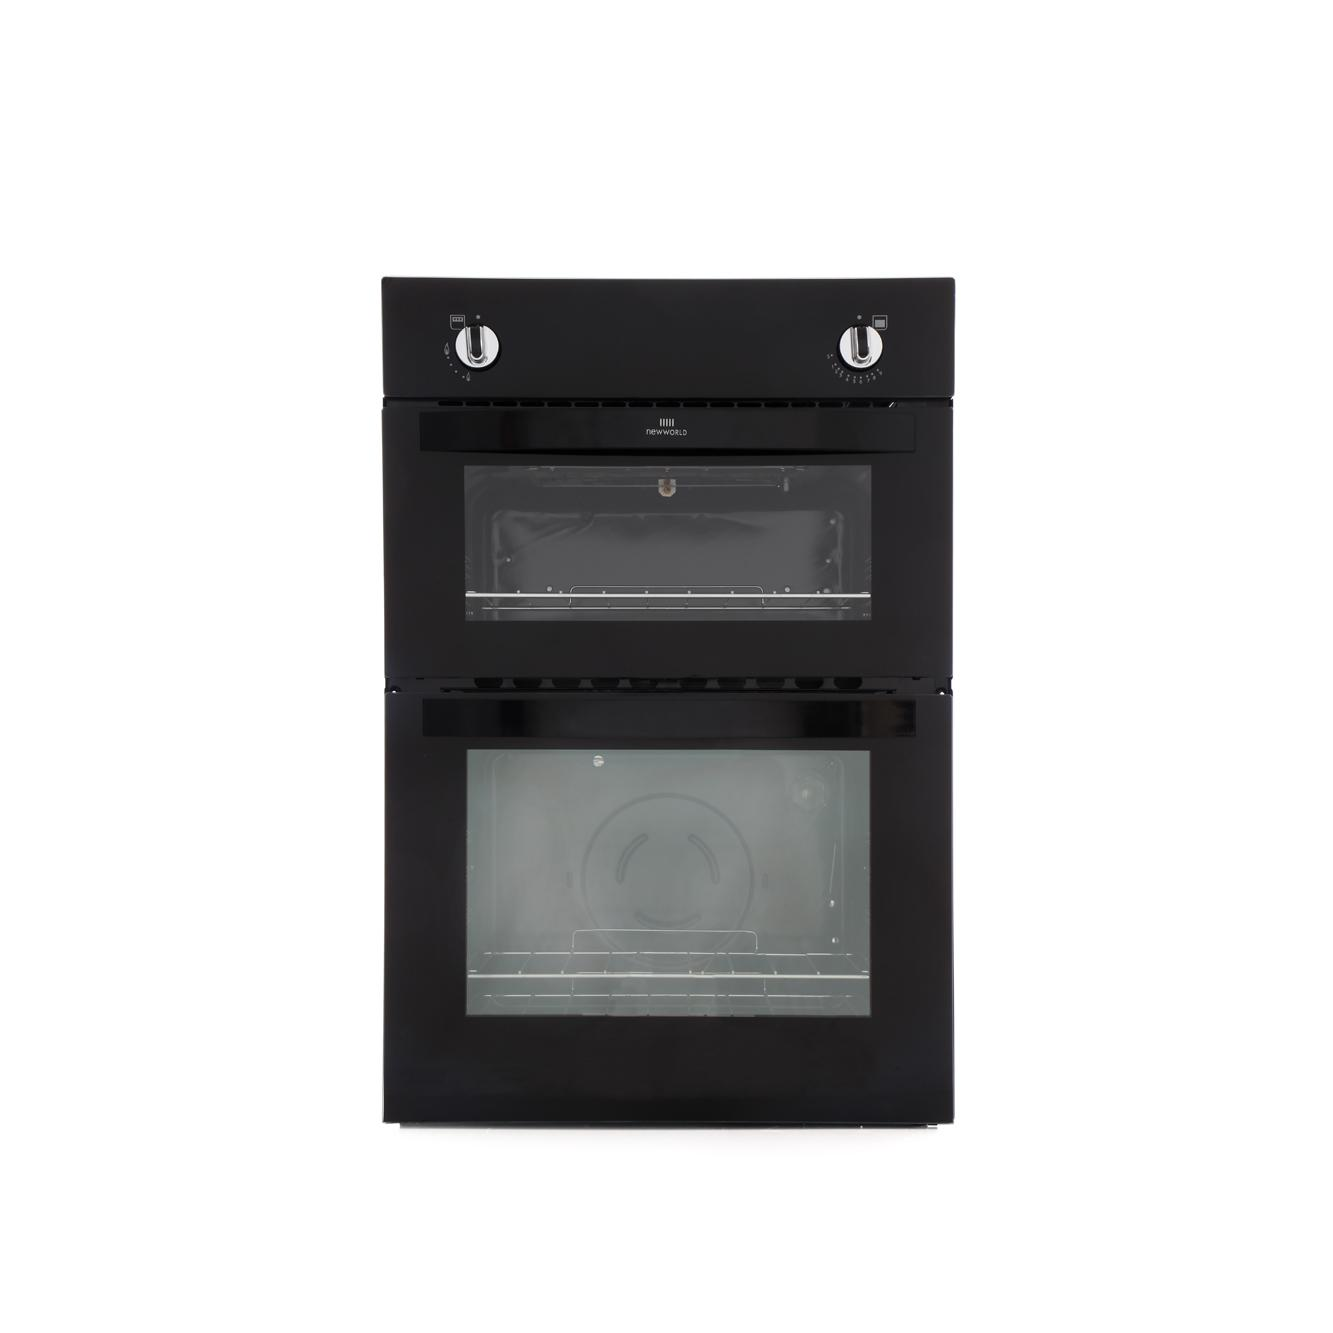 New World NW901G Black Built In Gas Oven Separate Grill